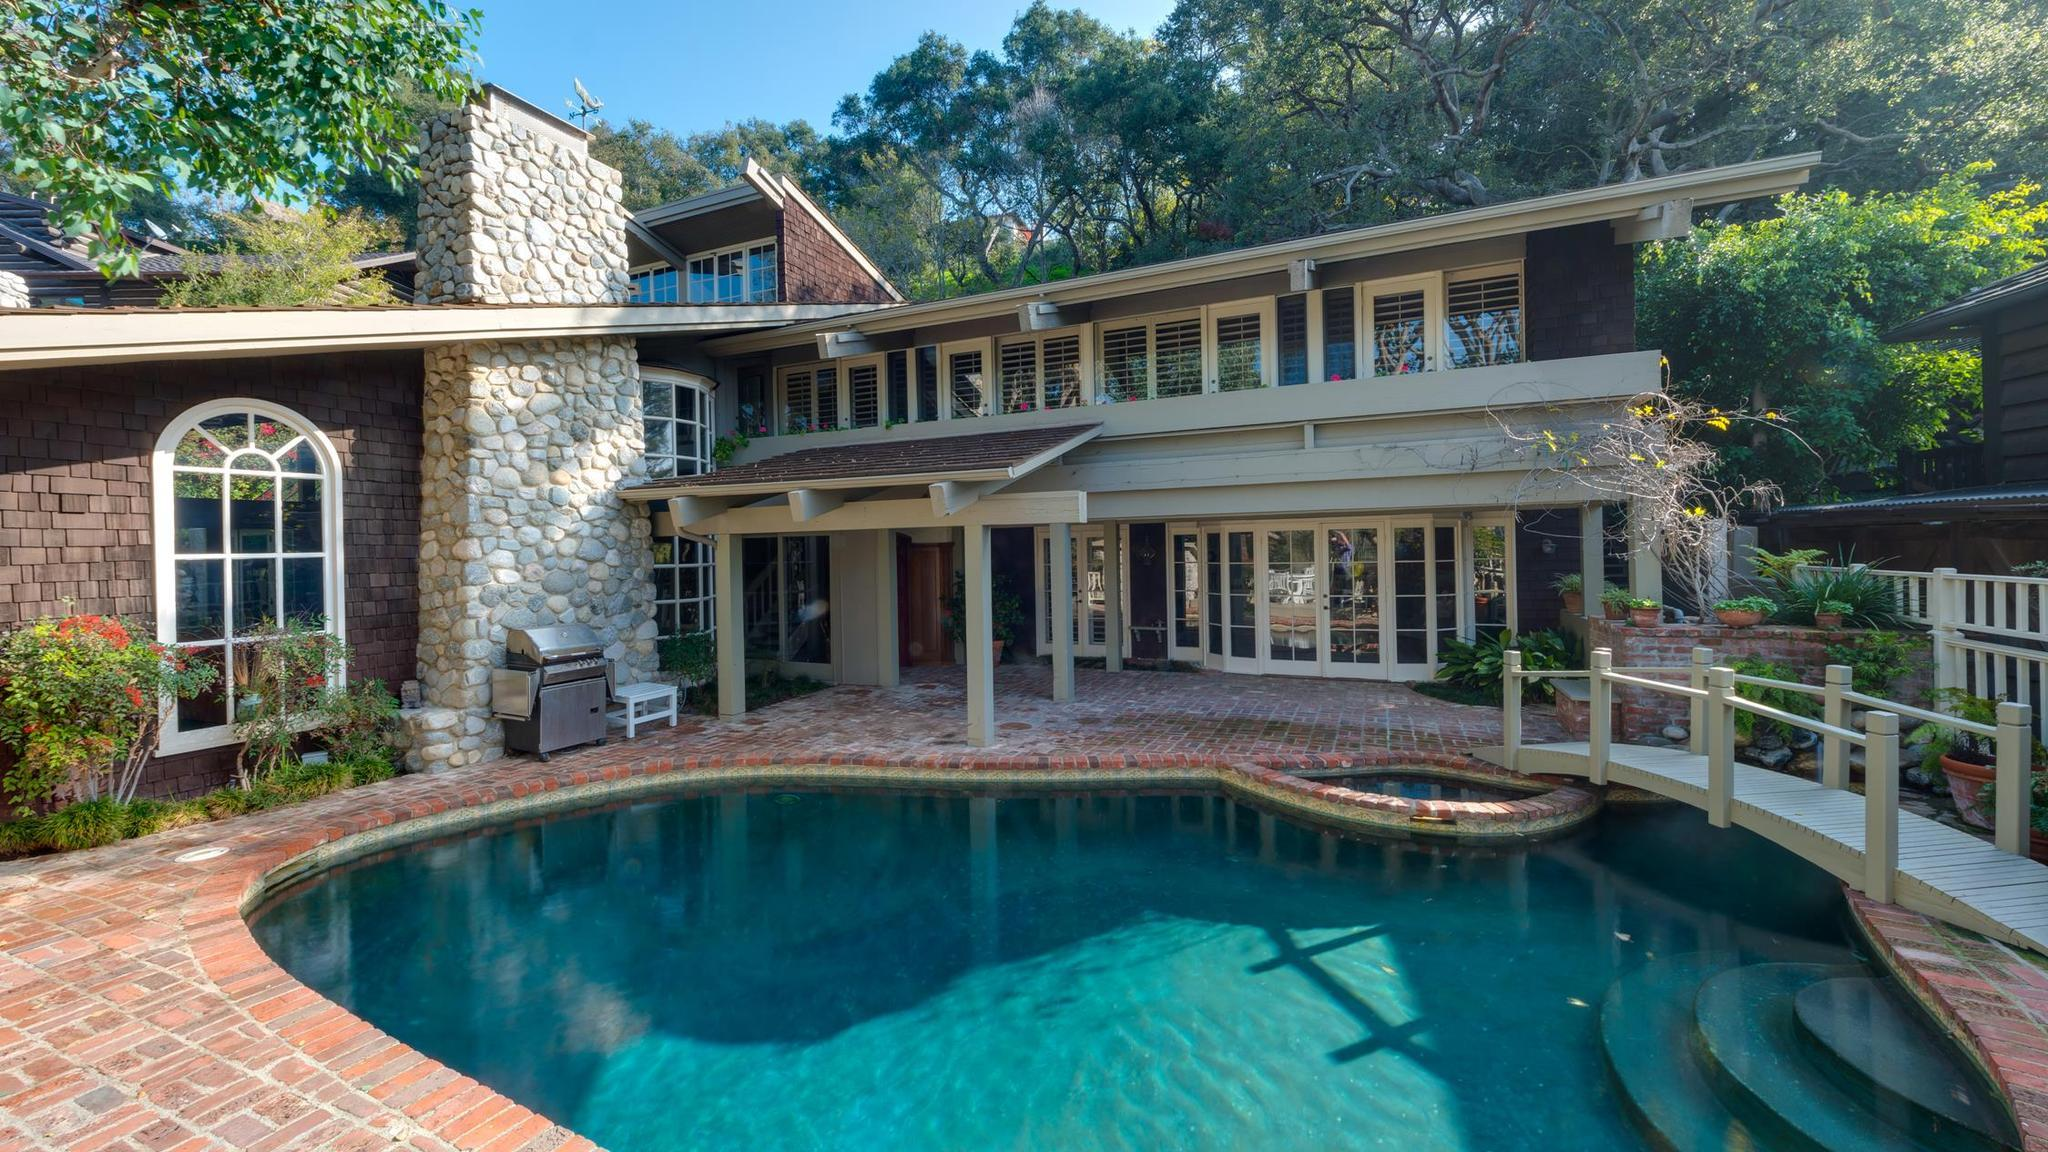 Home of the day relaxed vibe in rustic canyon daily press - Residence santa monica canyon en californie ...